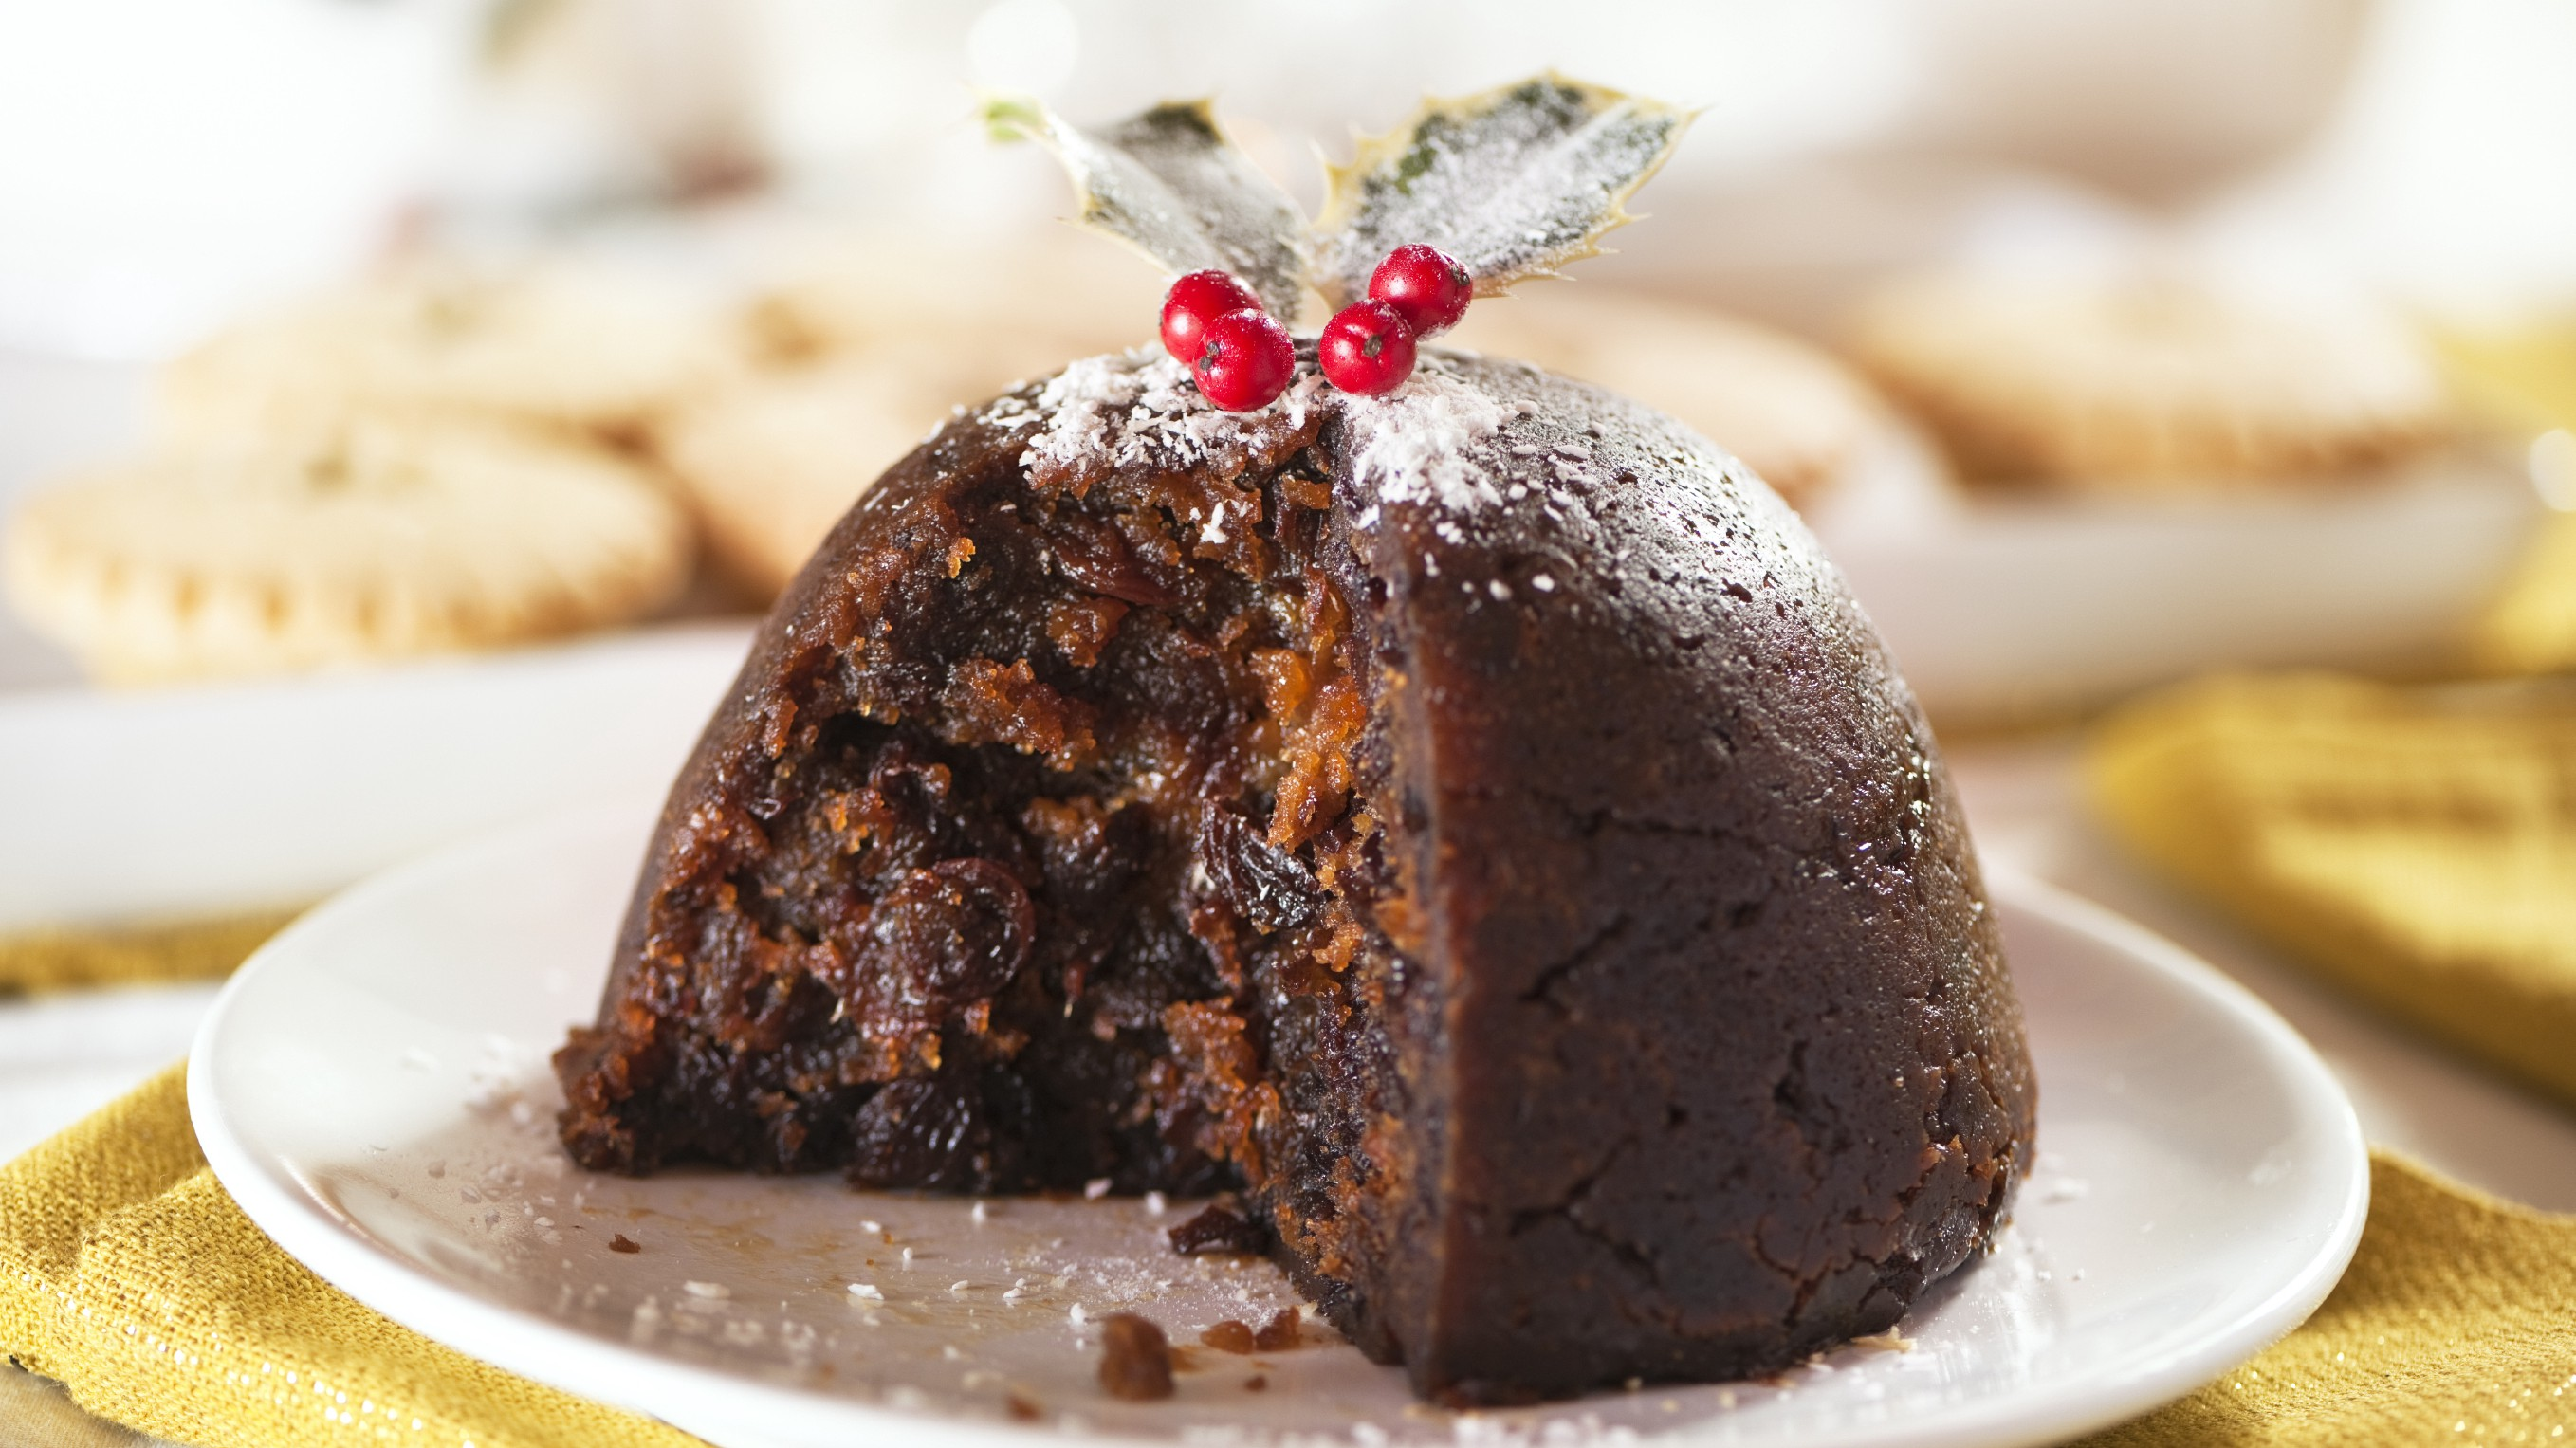 a fig pudding on a white plate, topped with powdered sugar and holly